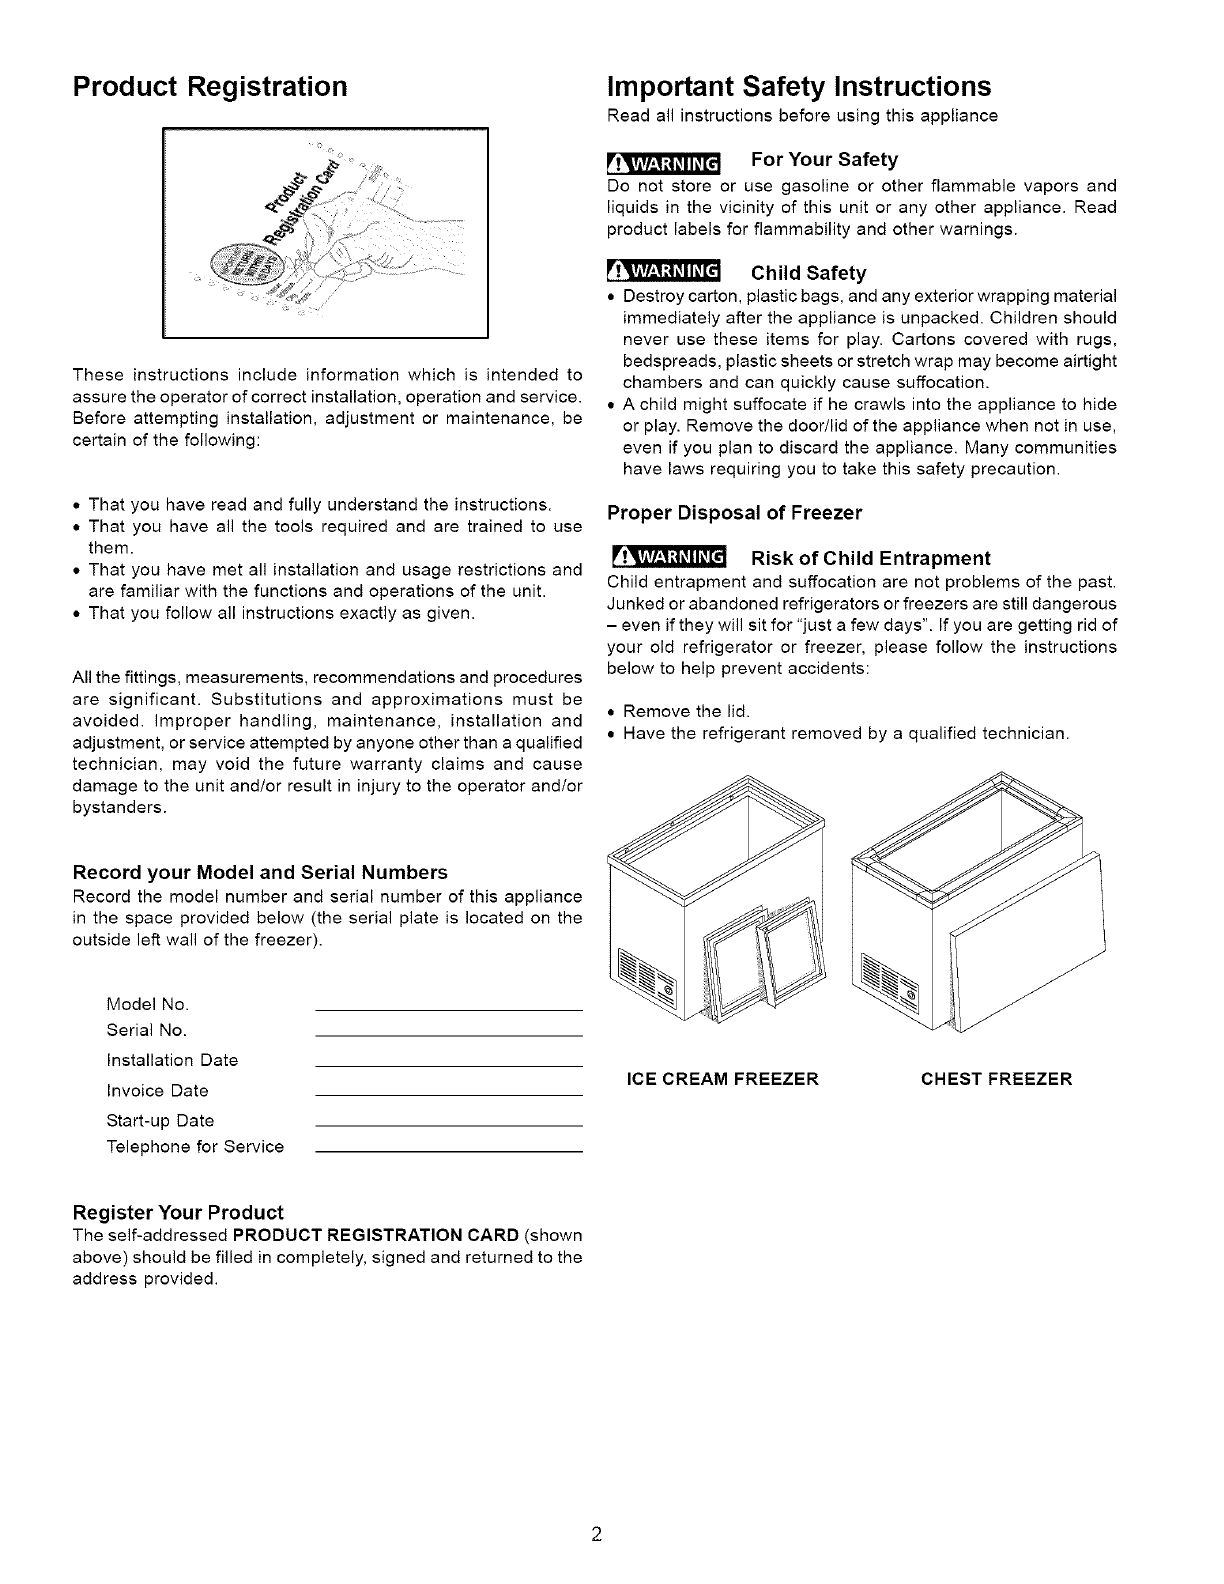 Frigidaire Fcc2071fw2 User Manual Freezer Manuals And Guides L0610623 Chest Wiring Diagram